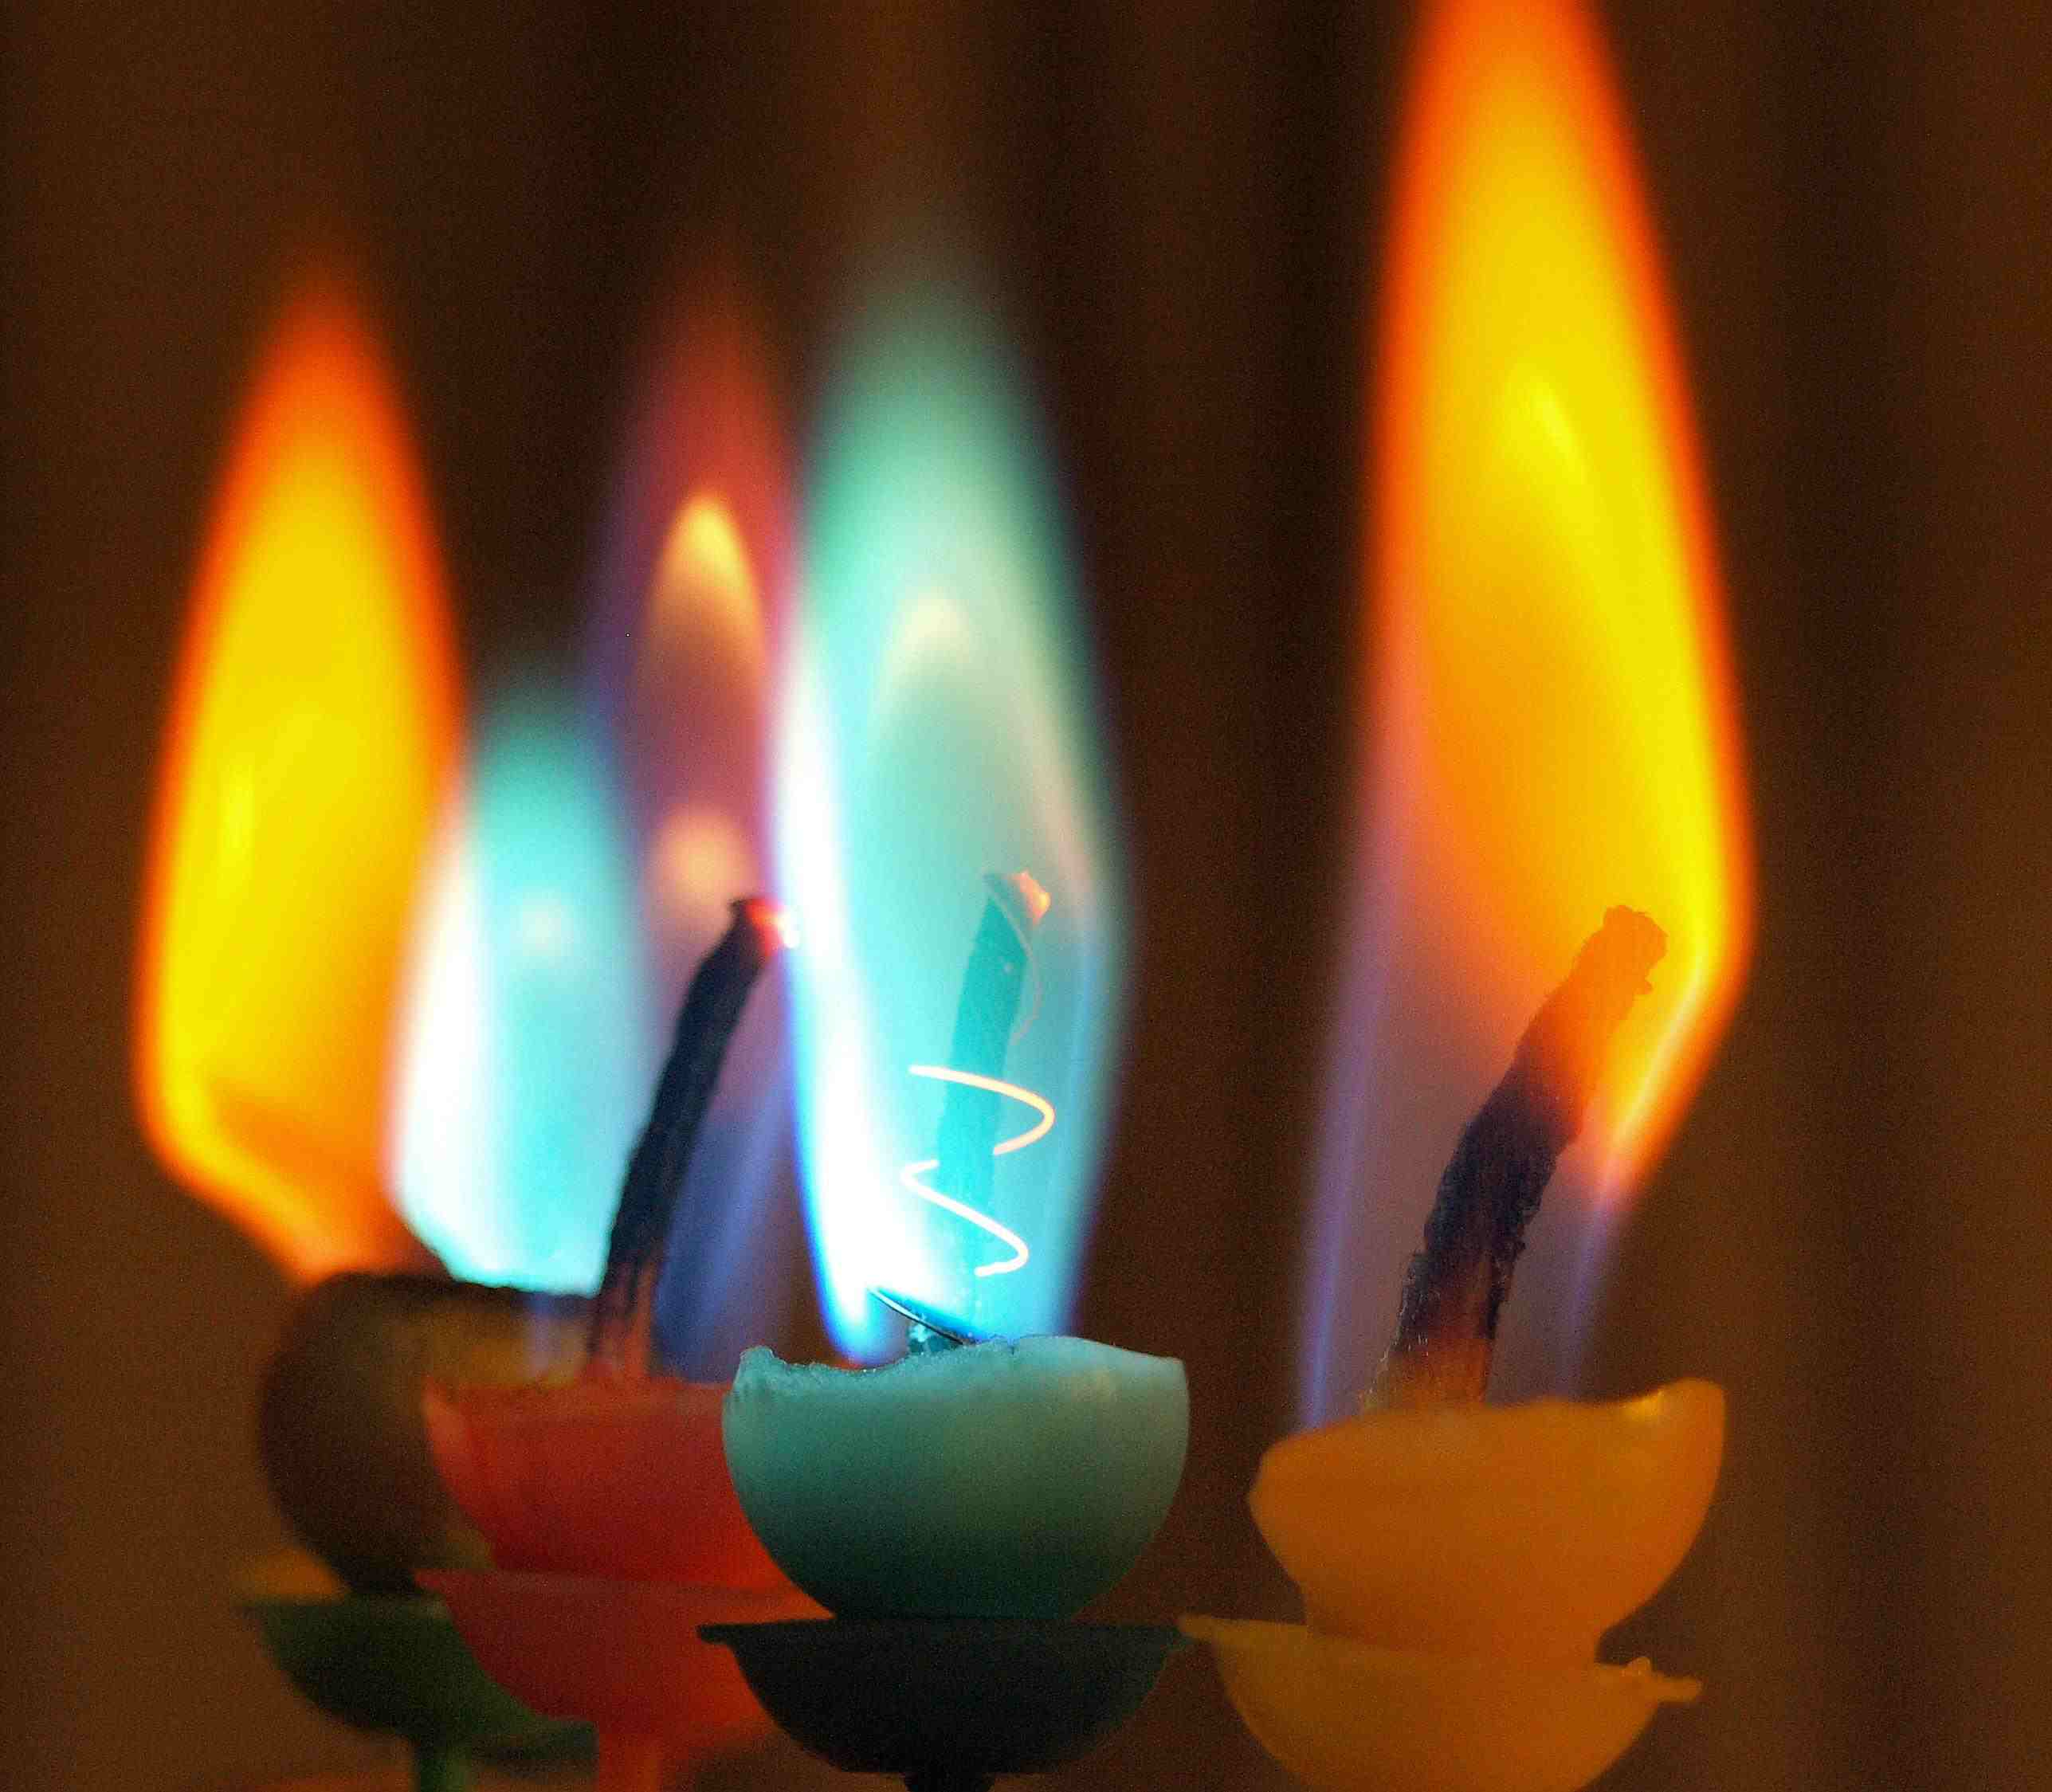 Chemical reactions can change the color of flames.